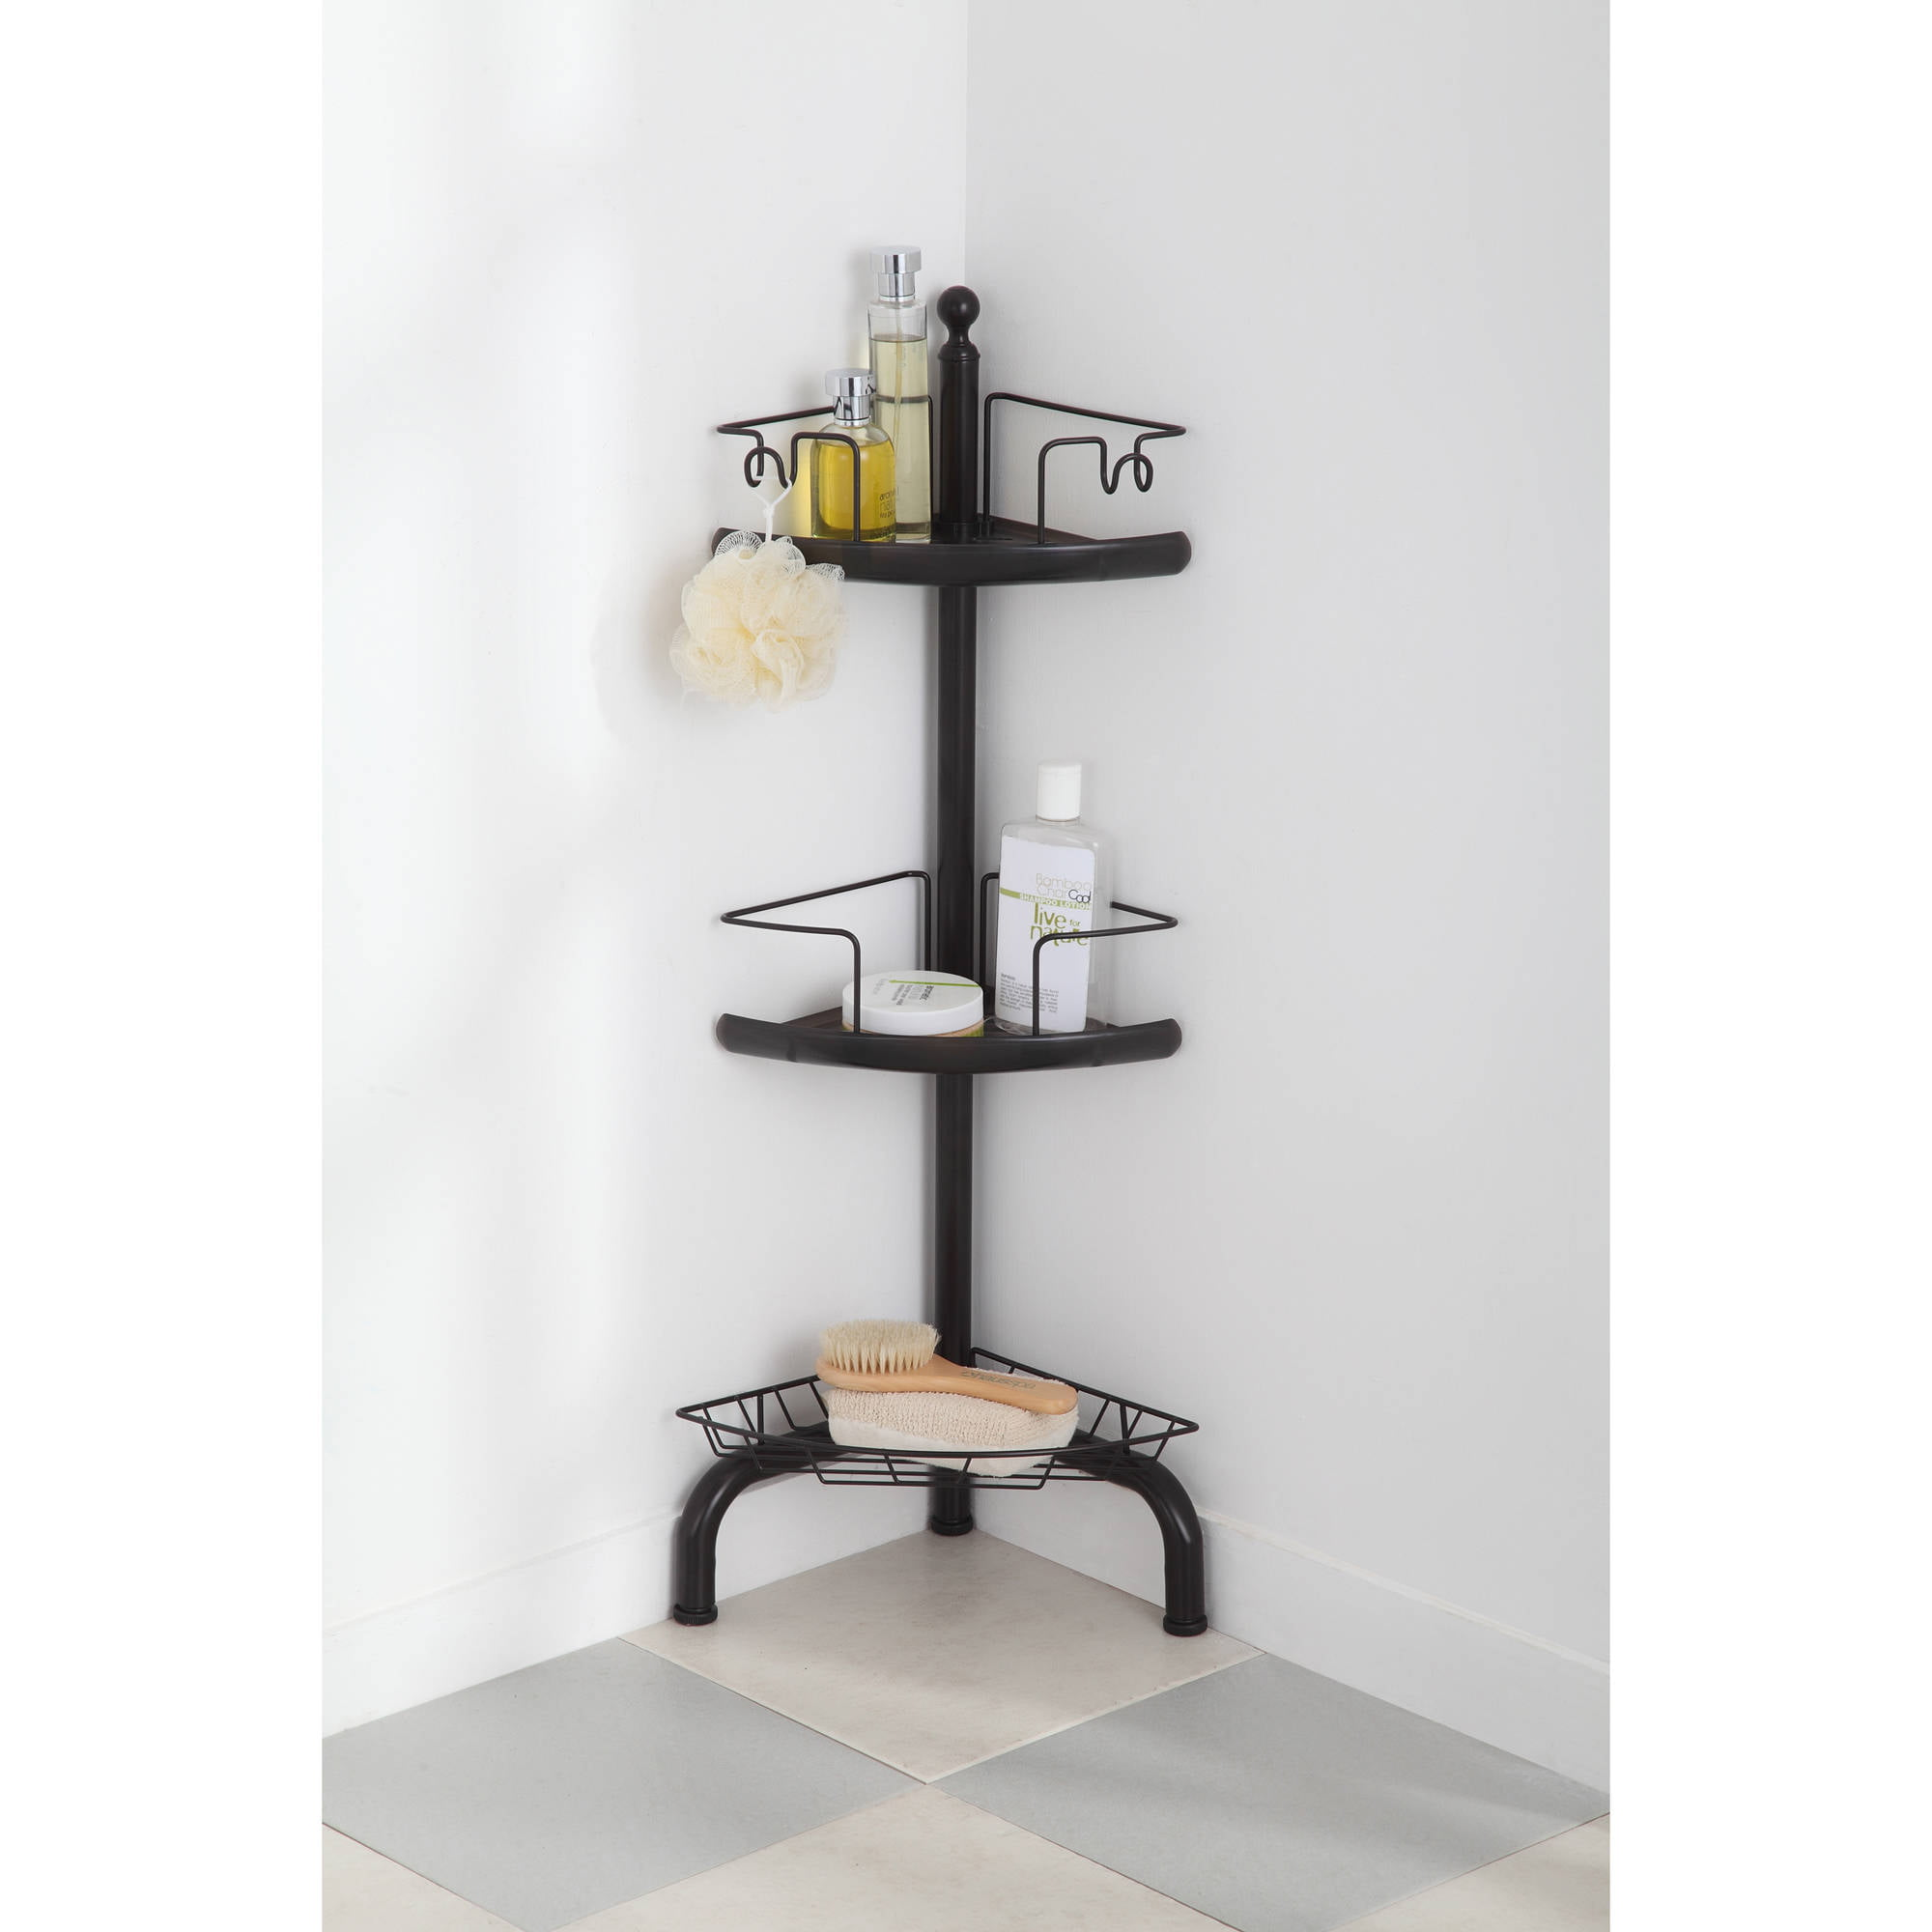 Merveilleux HomeZone 3 Tier Adjustable Corner Shower Caddy, Oil Rubbed Bronze    Walmart.com